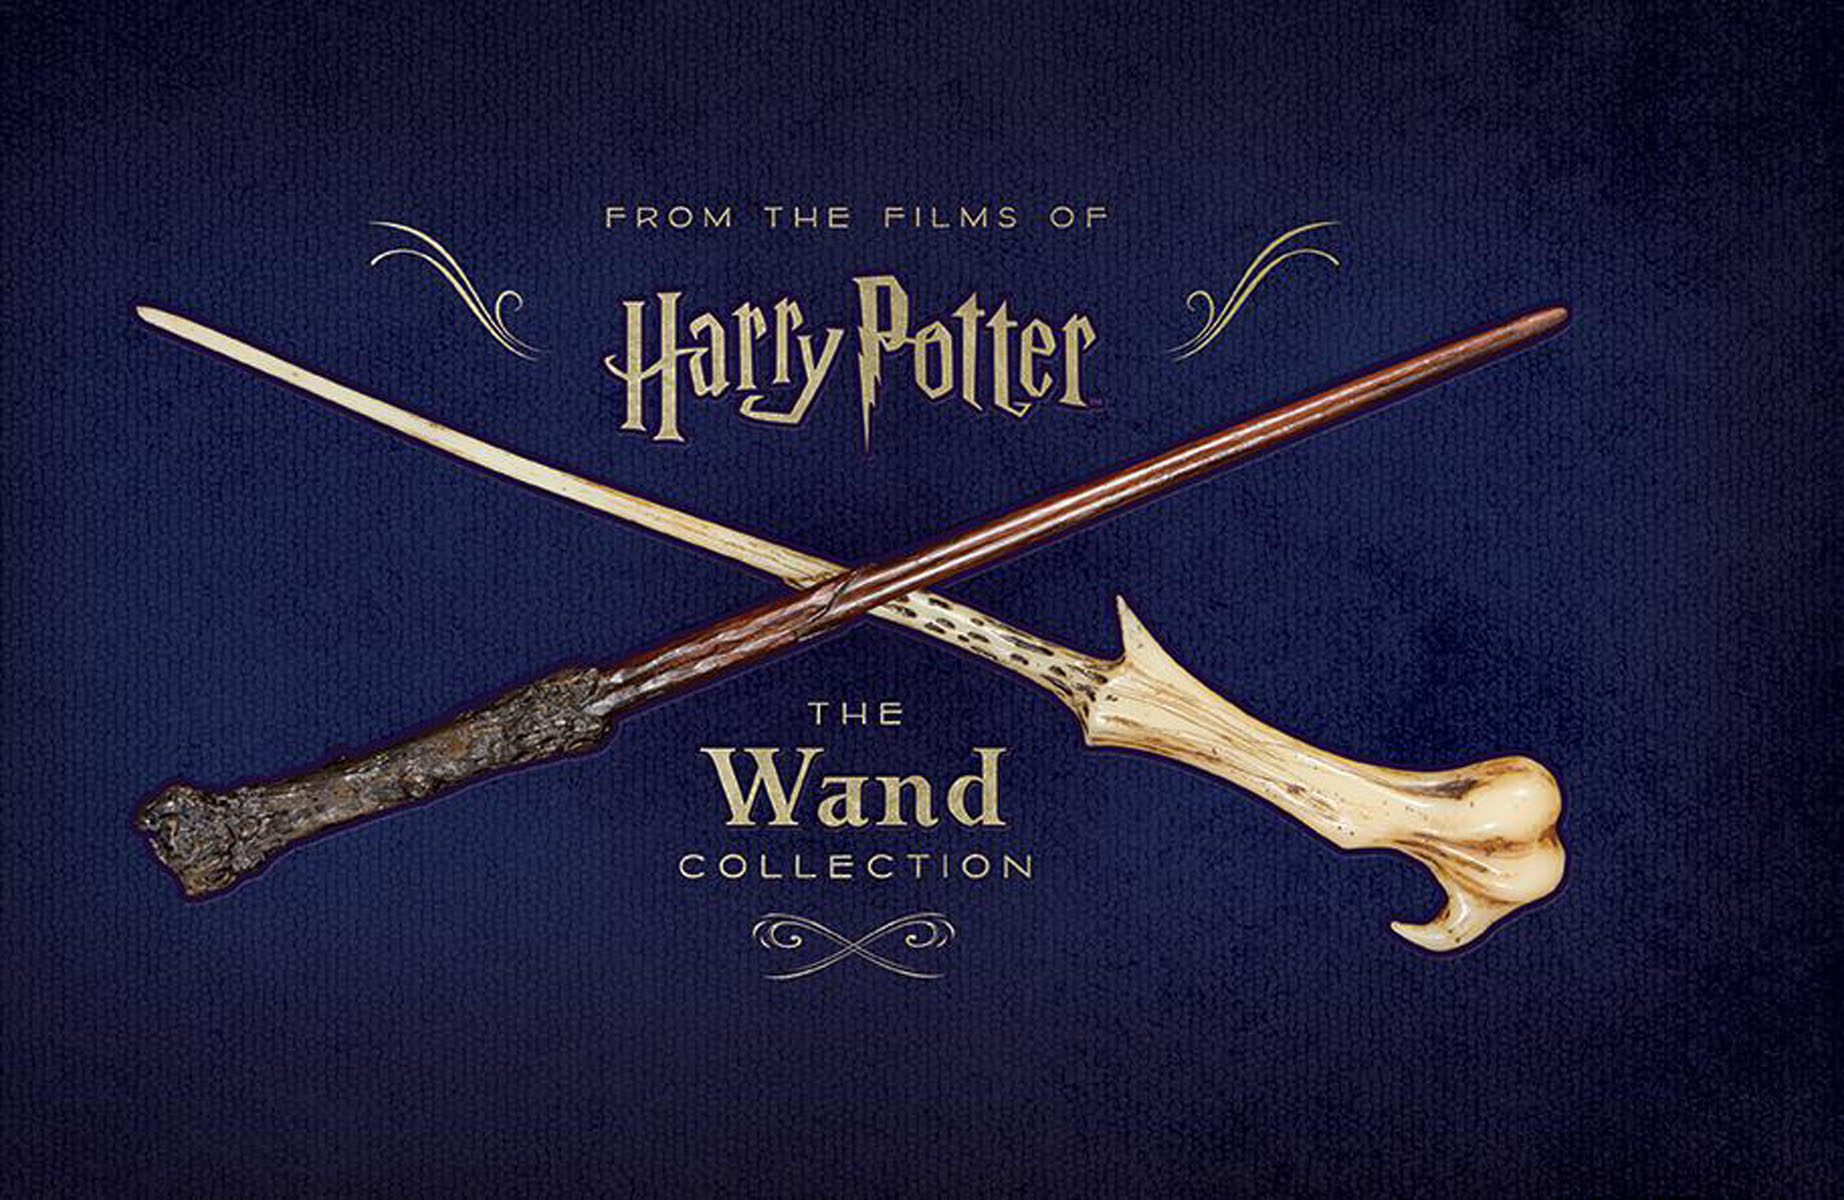 Harry Potter The Wand Collection harry potter the chamber of secrets